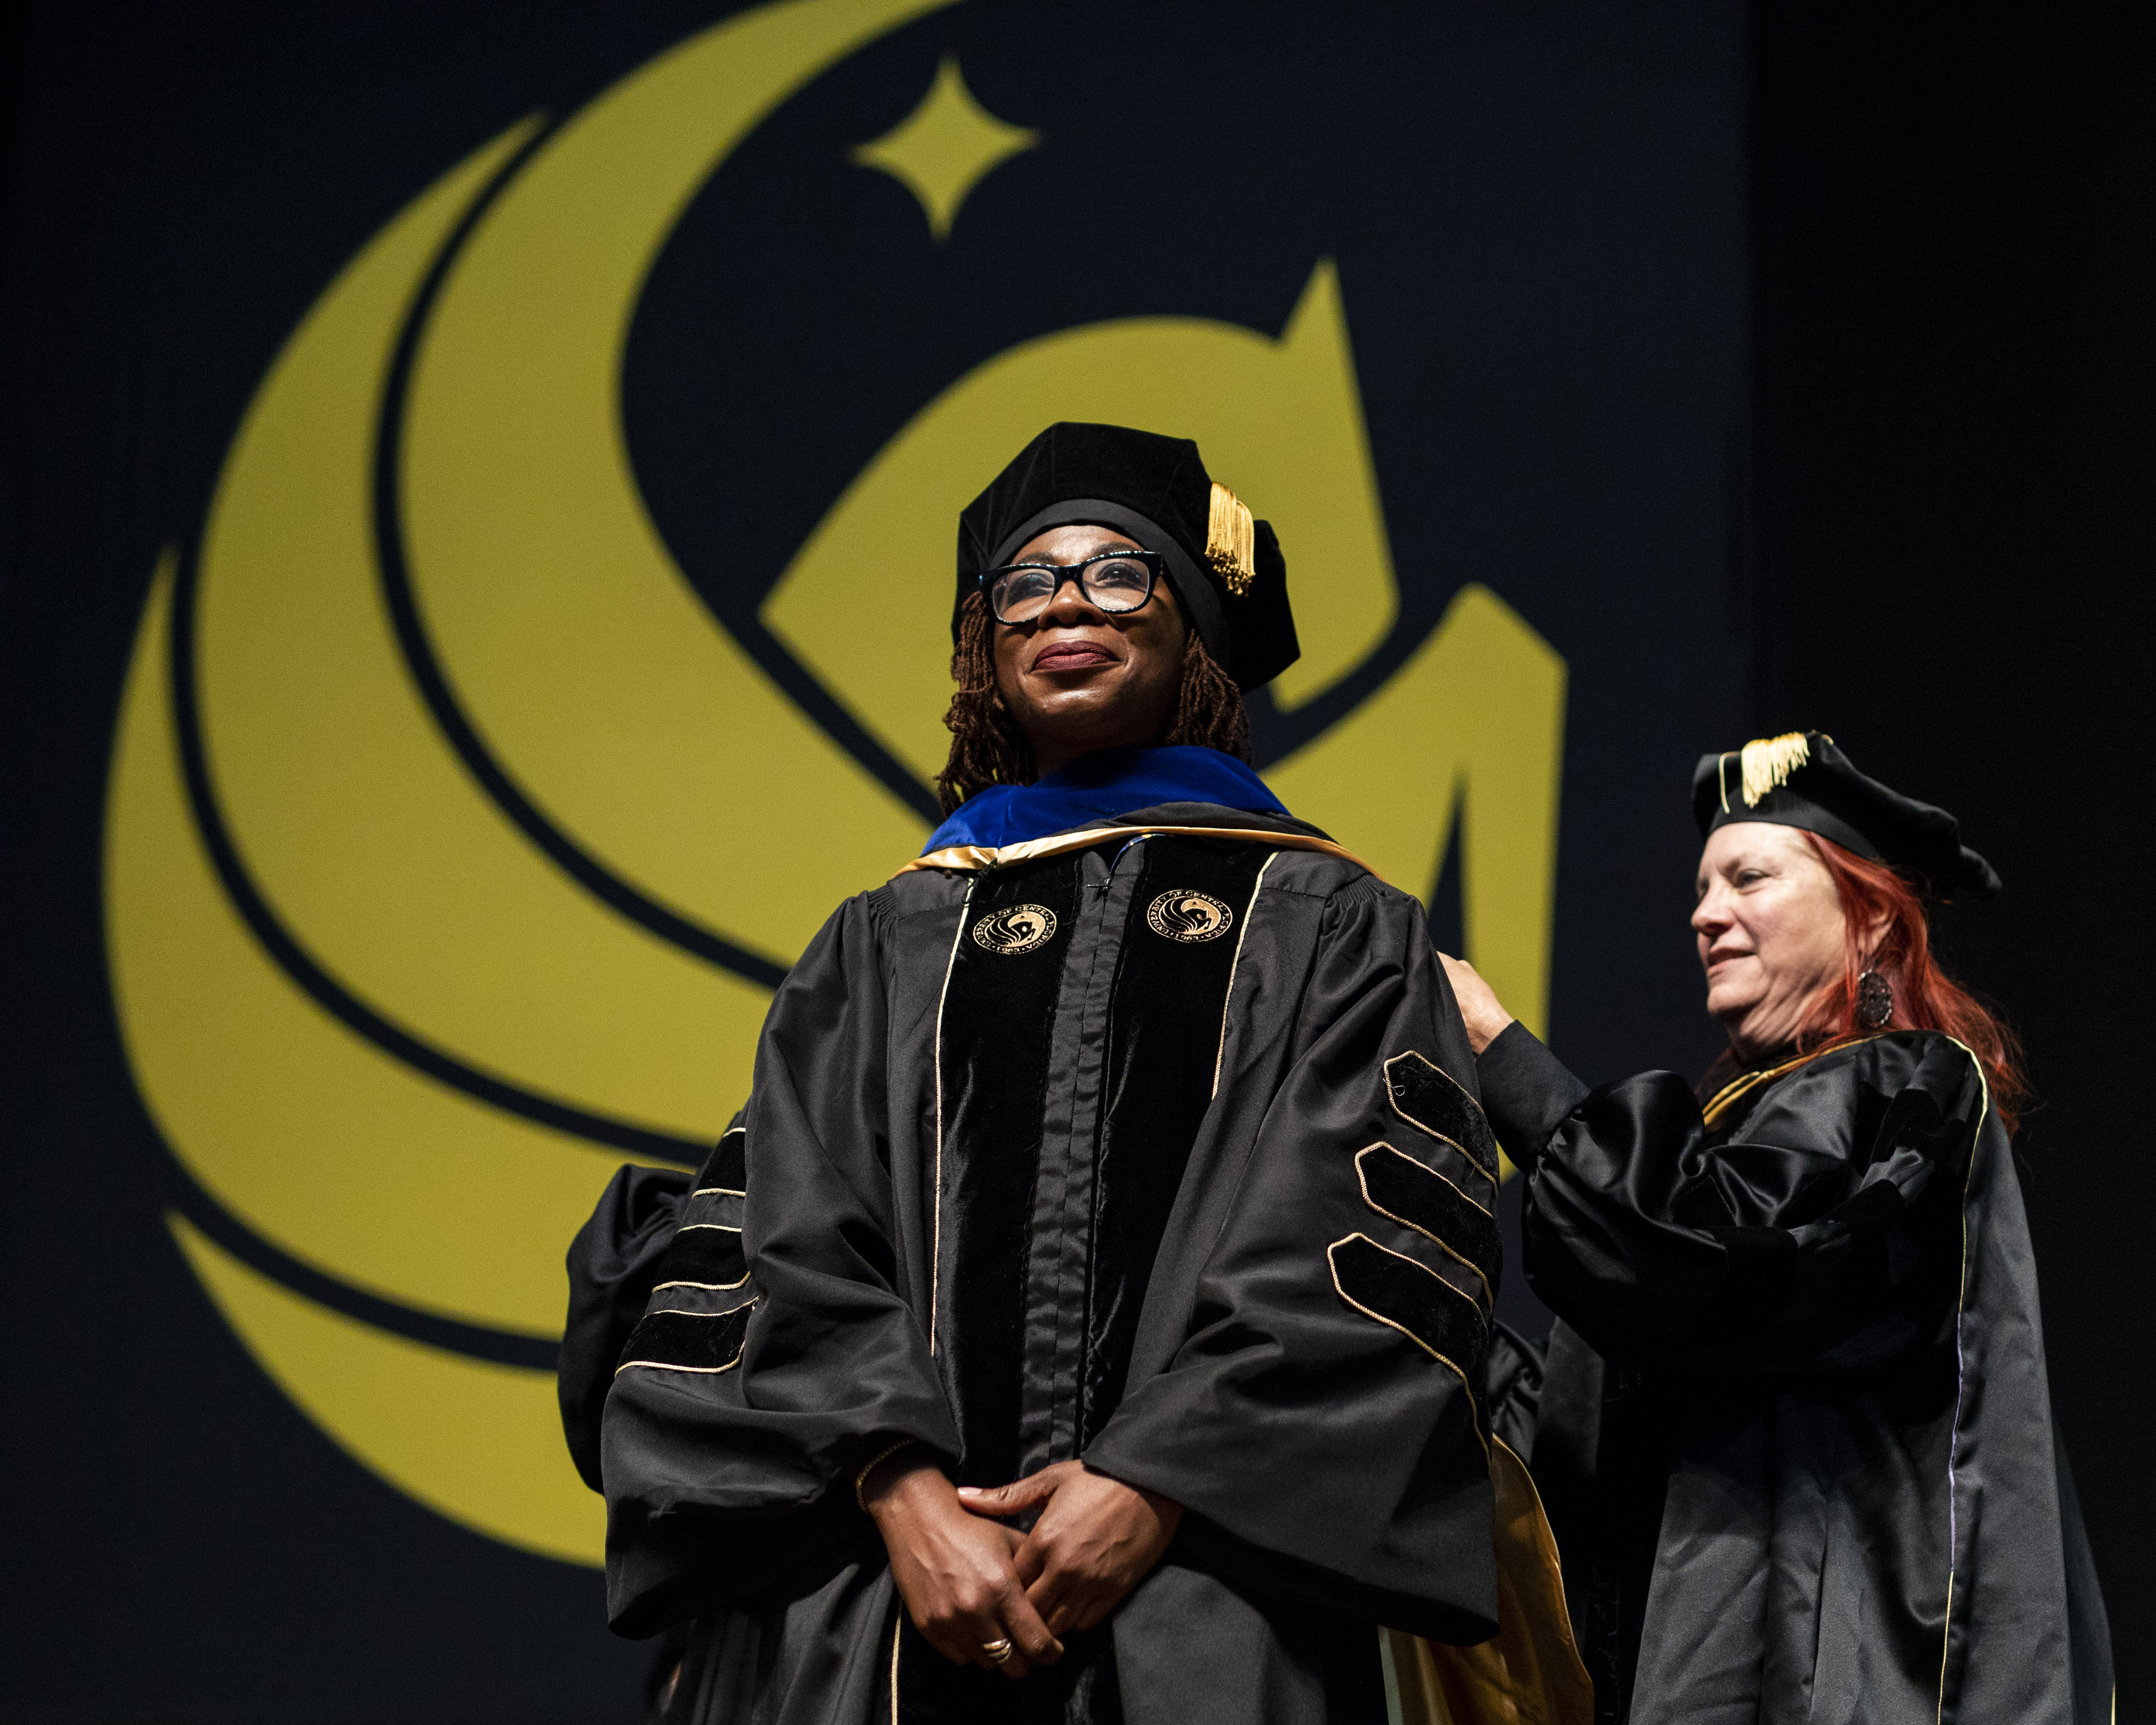 A female doctoral candidate waits on stage as a woman places a hood over her.